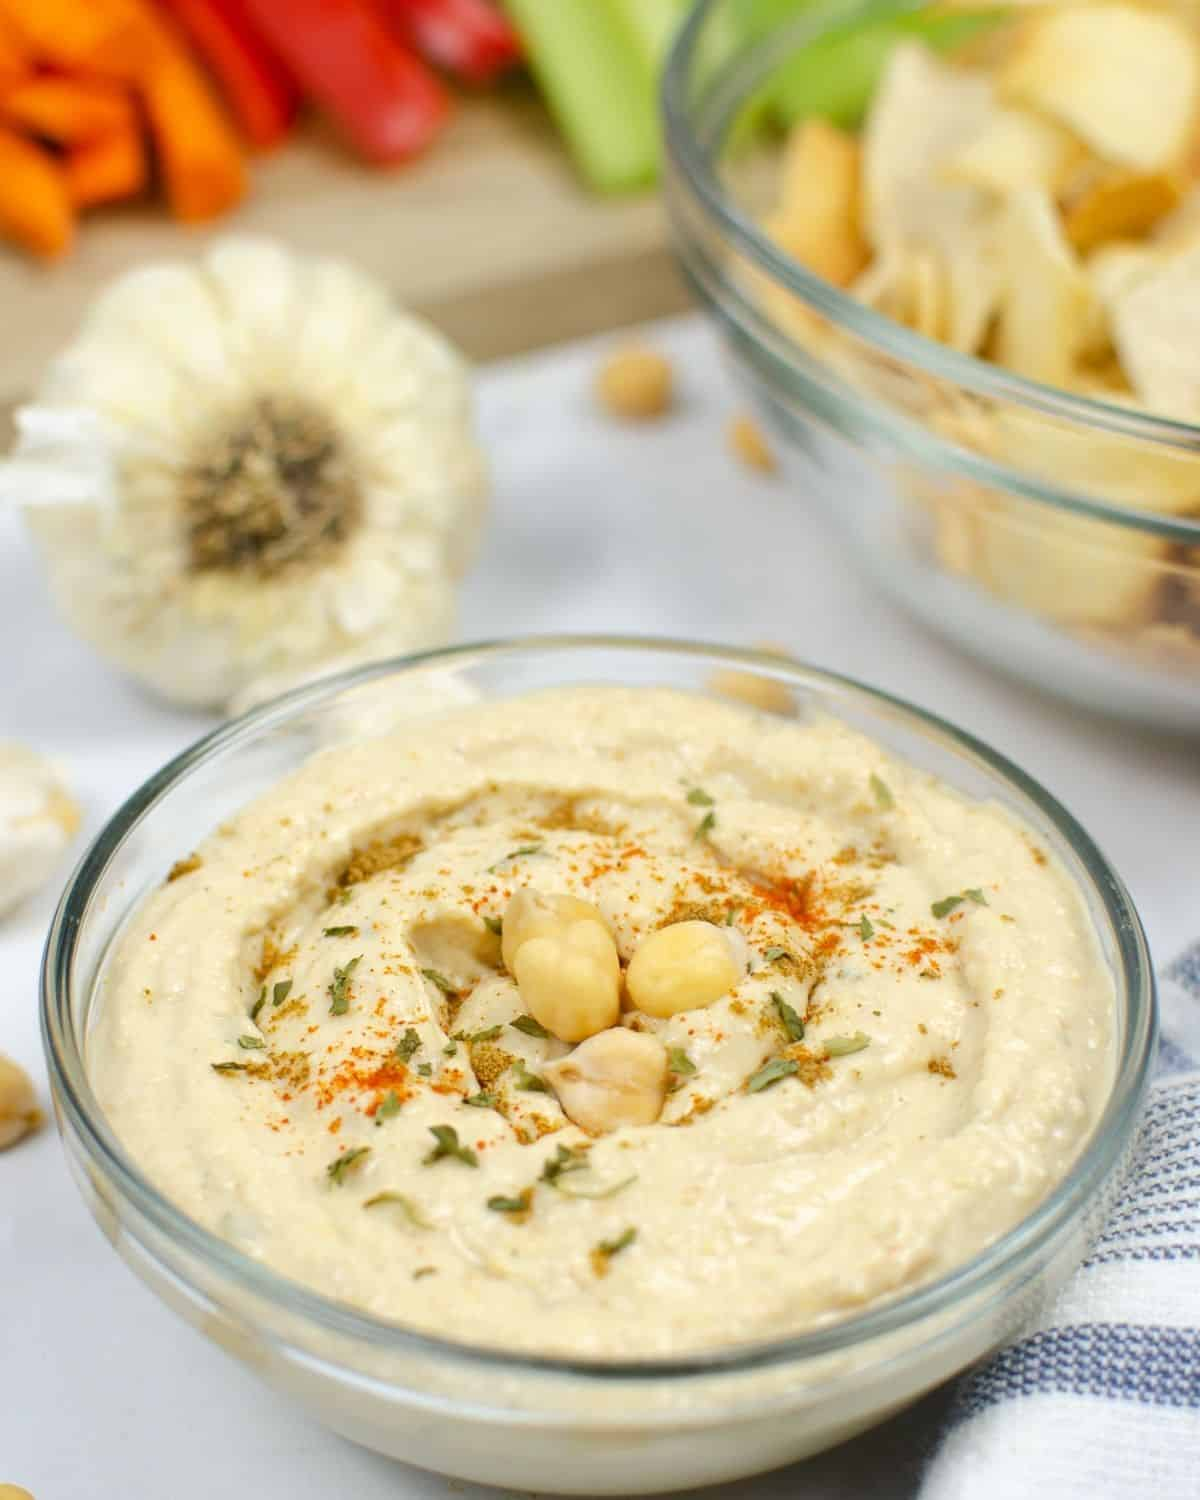 A bowl of hummus topped with chickpeas, paprika and oil